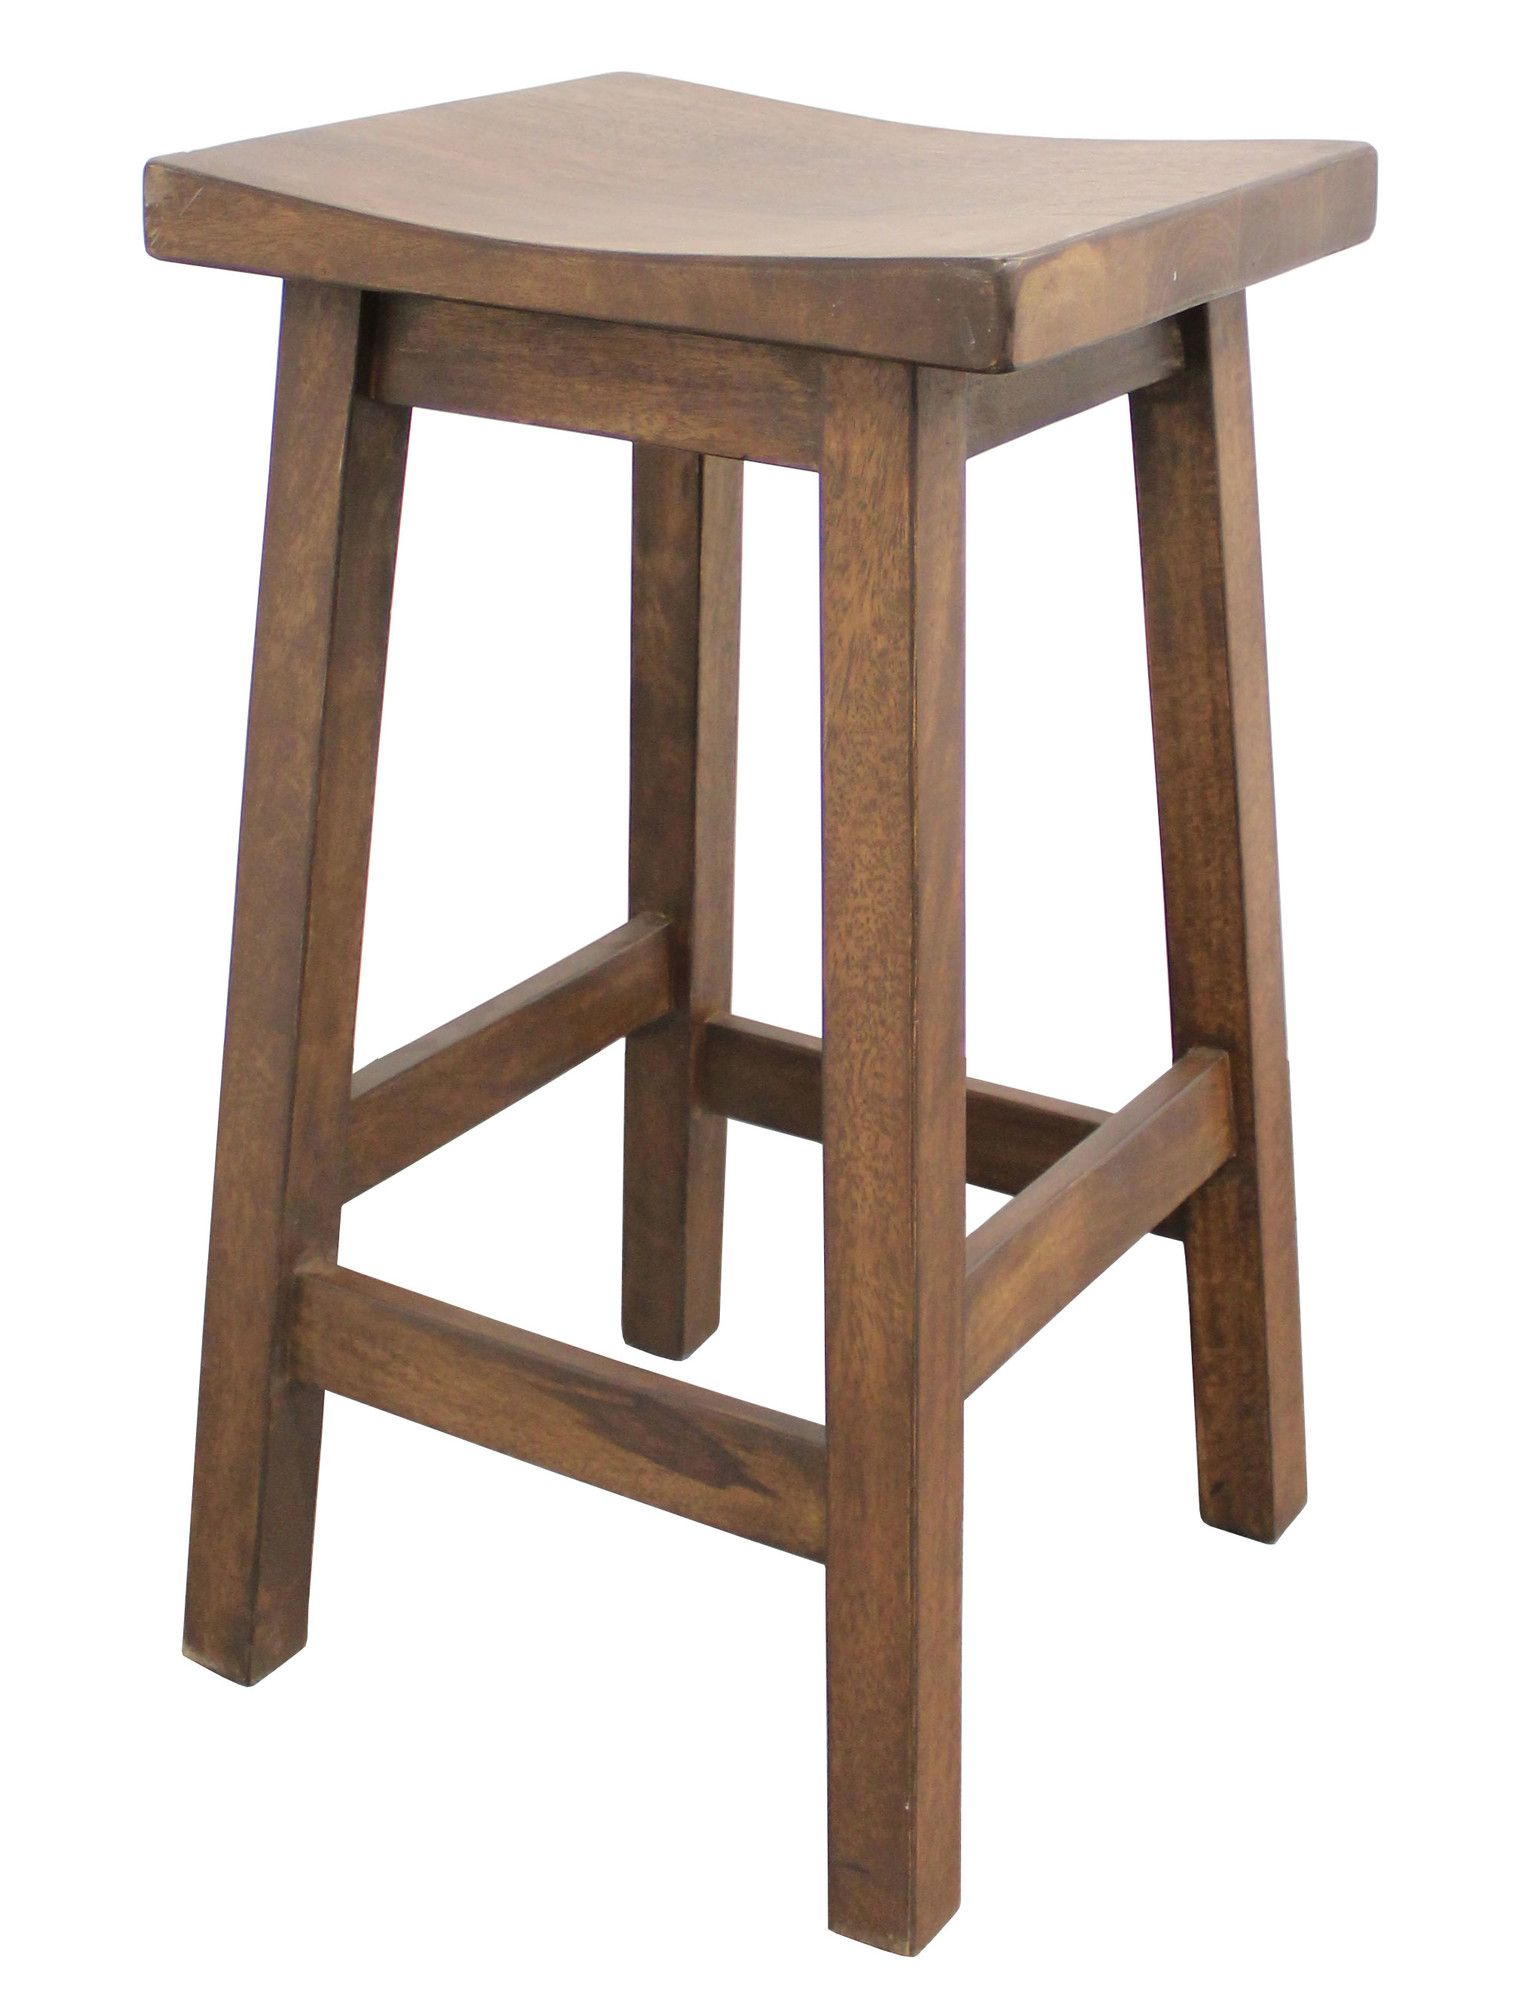 Wooden Kitchen Stools Cafe Del Mar Wooden Barstool In 2019 Banco De Madera